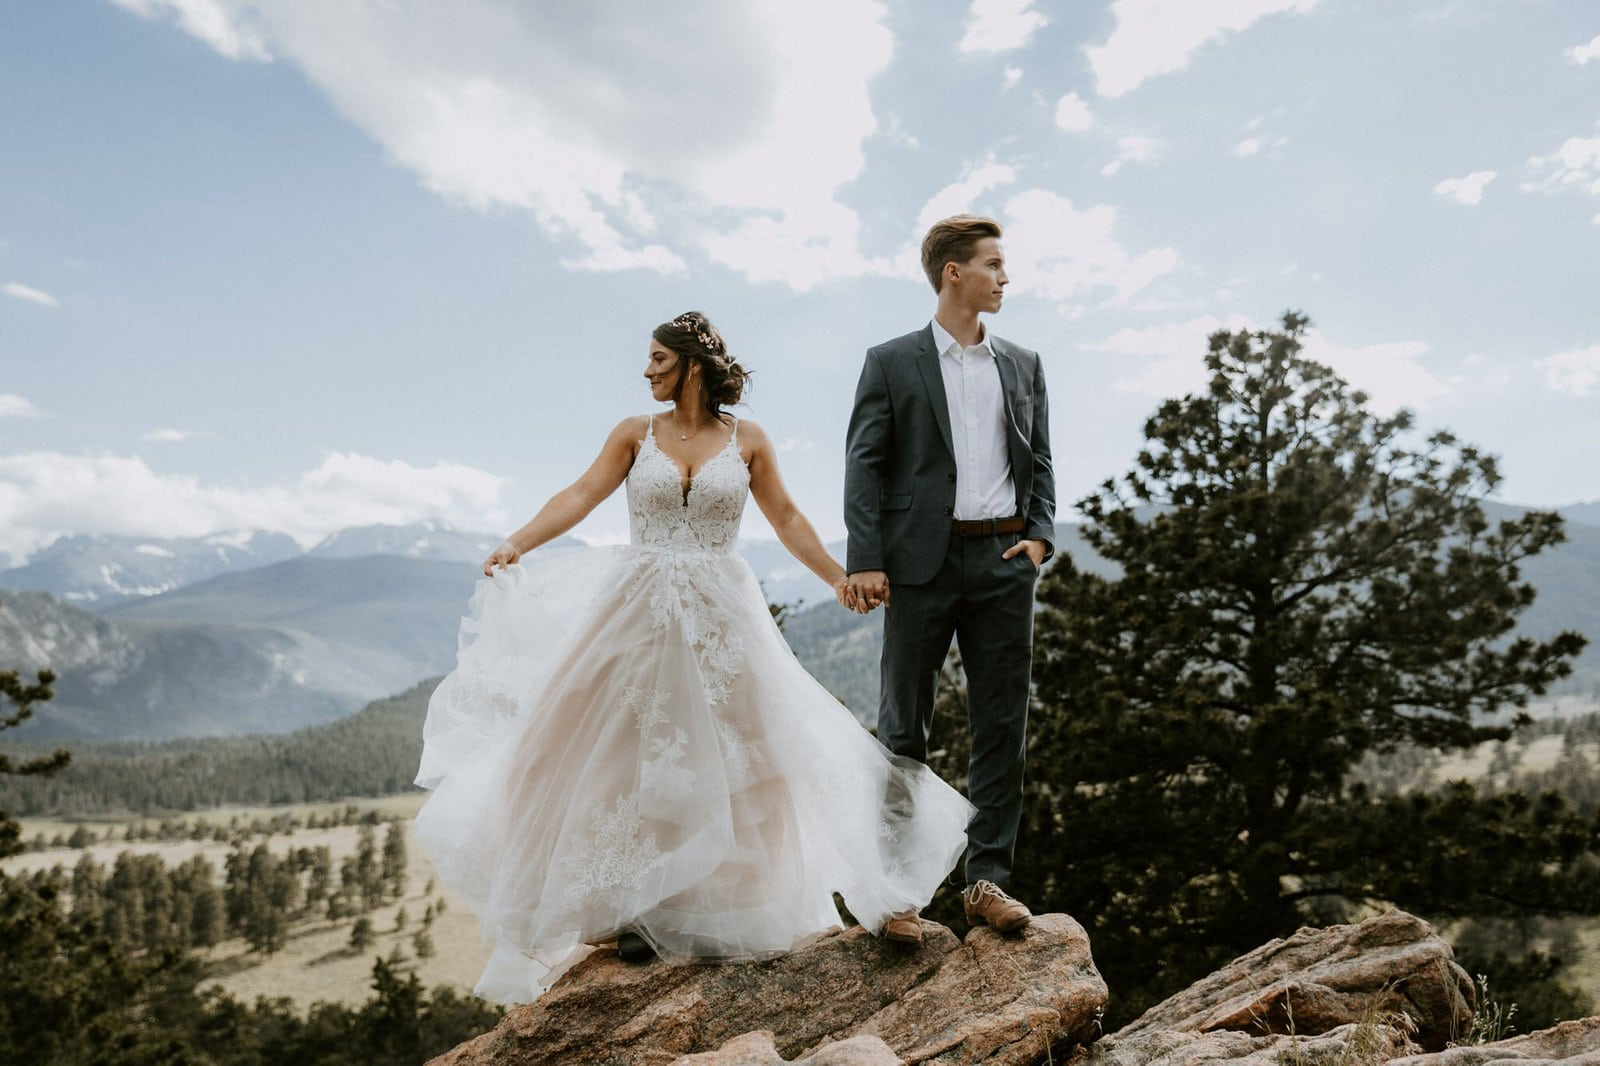 Bridal photography at Rocky Mountain national park.